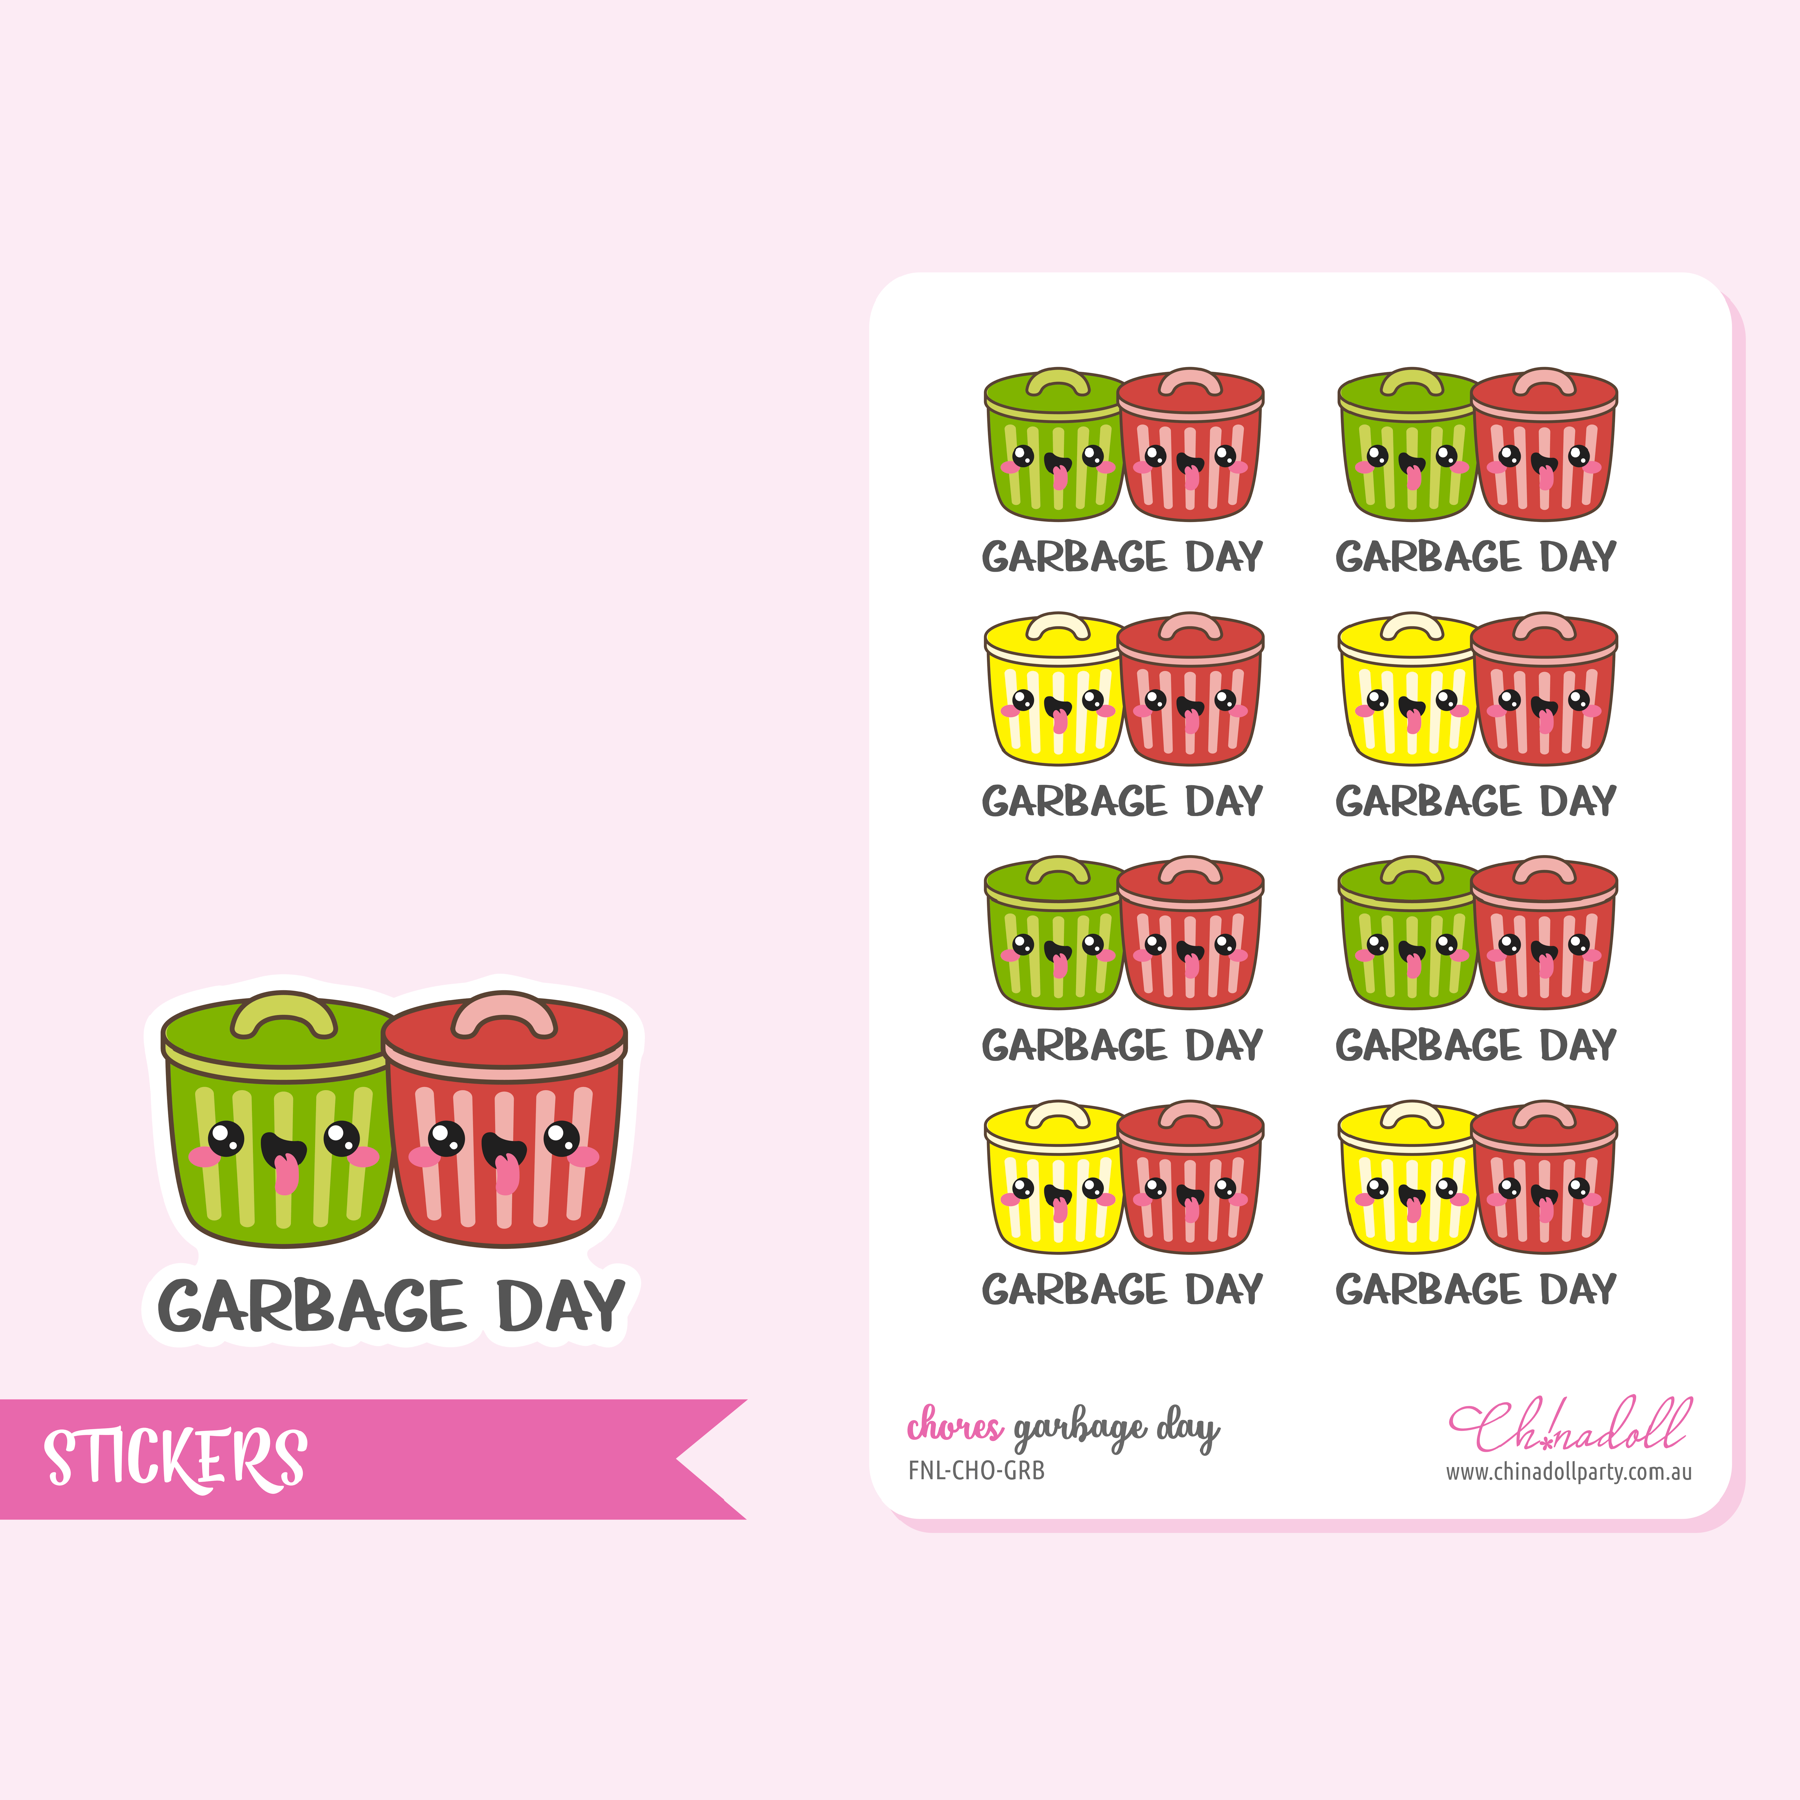 chores - garbage day | sticker sheet | FNL-CHO-GRB